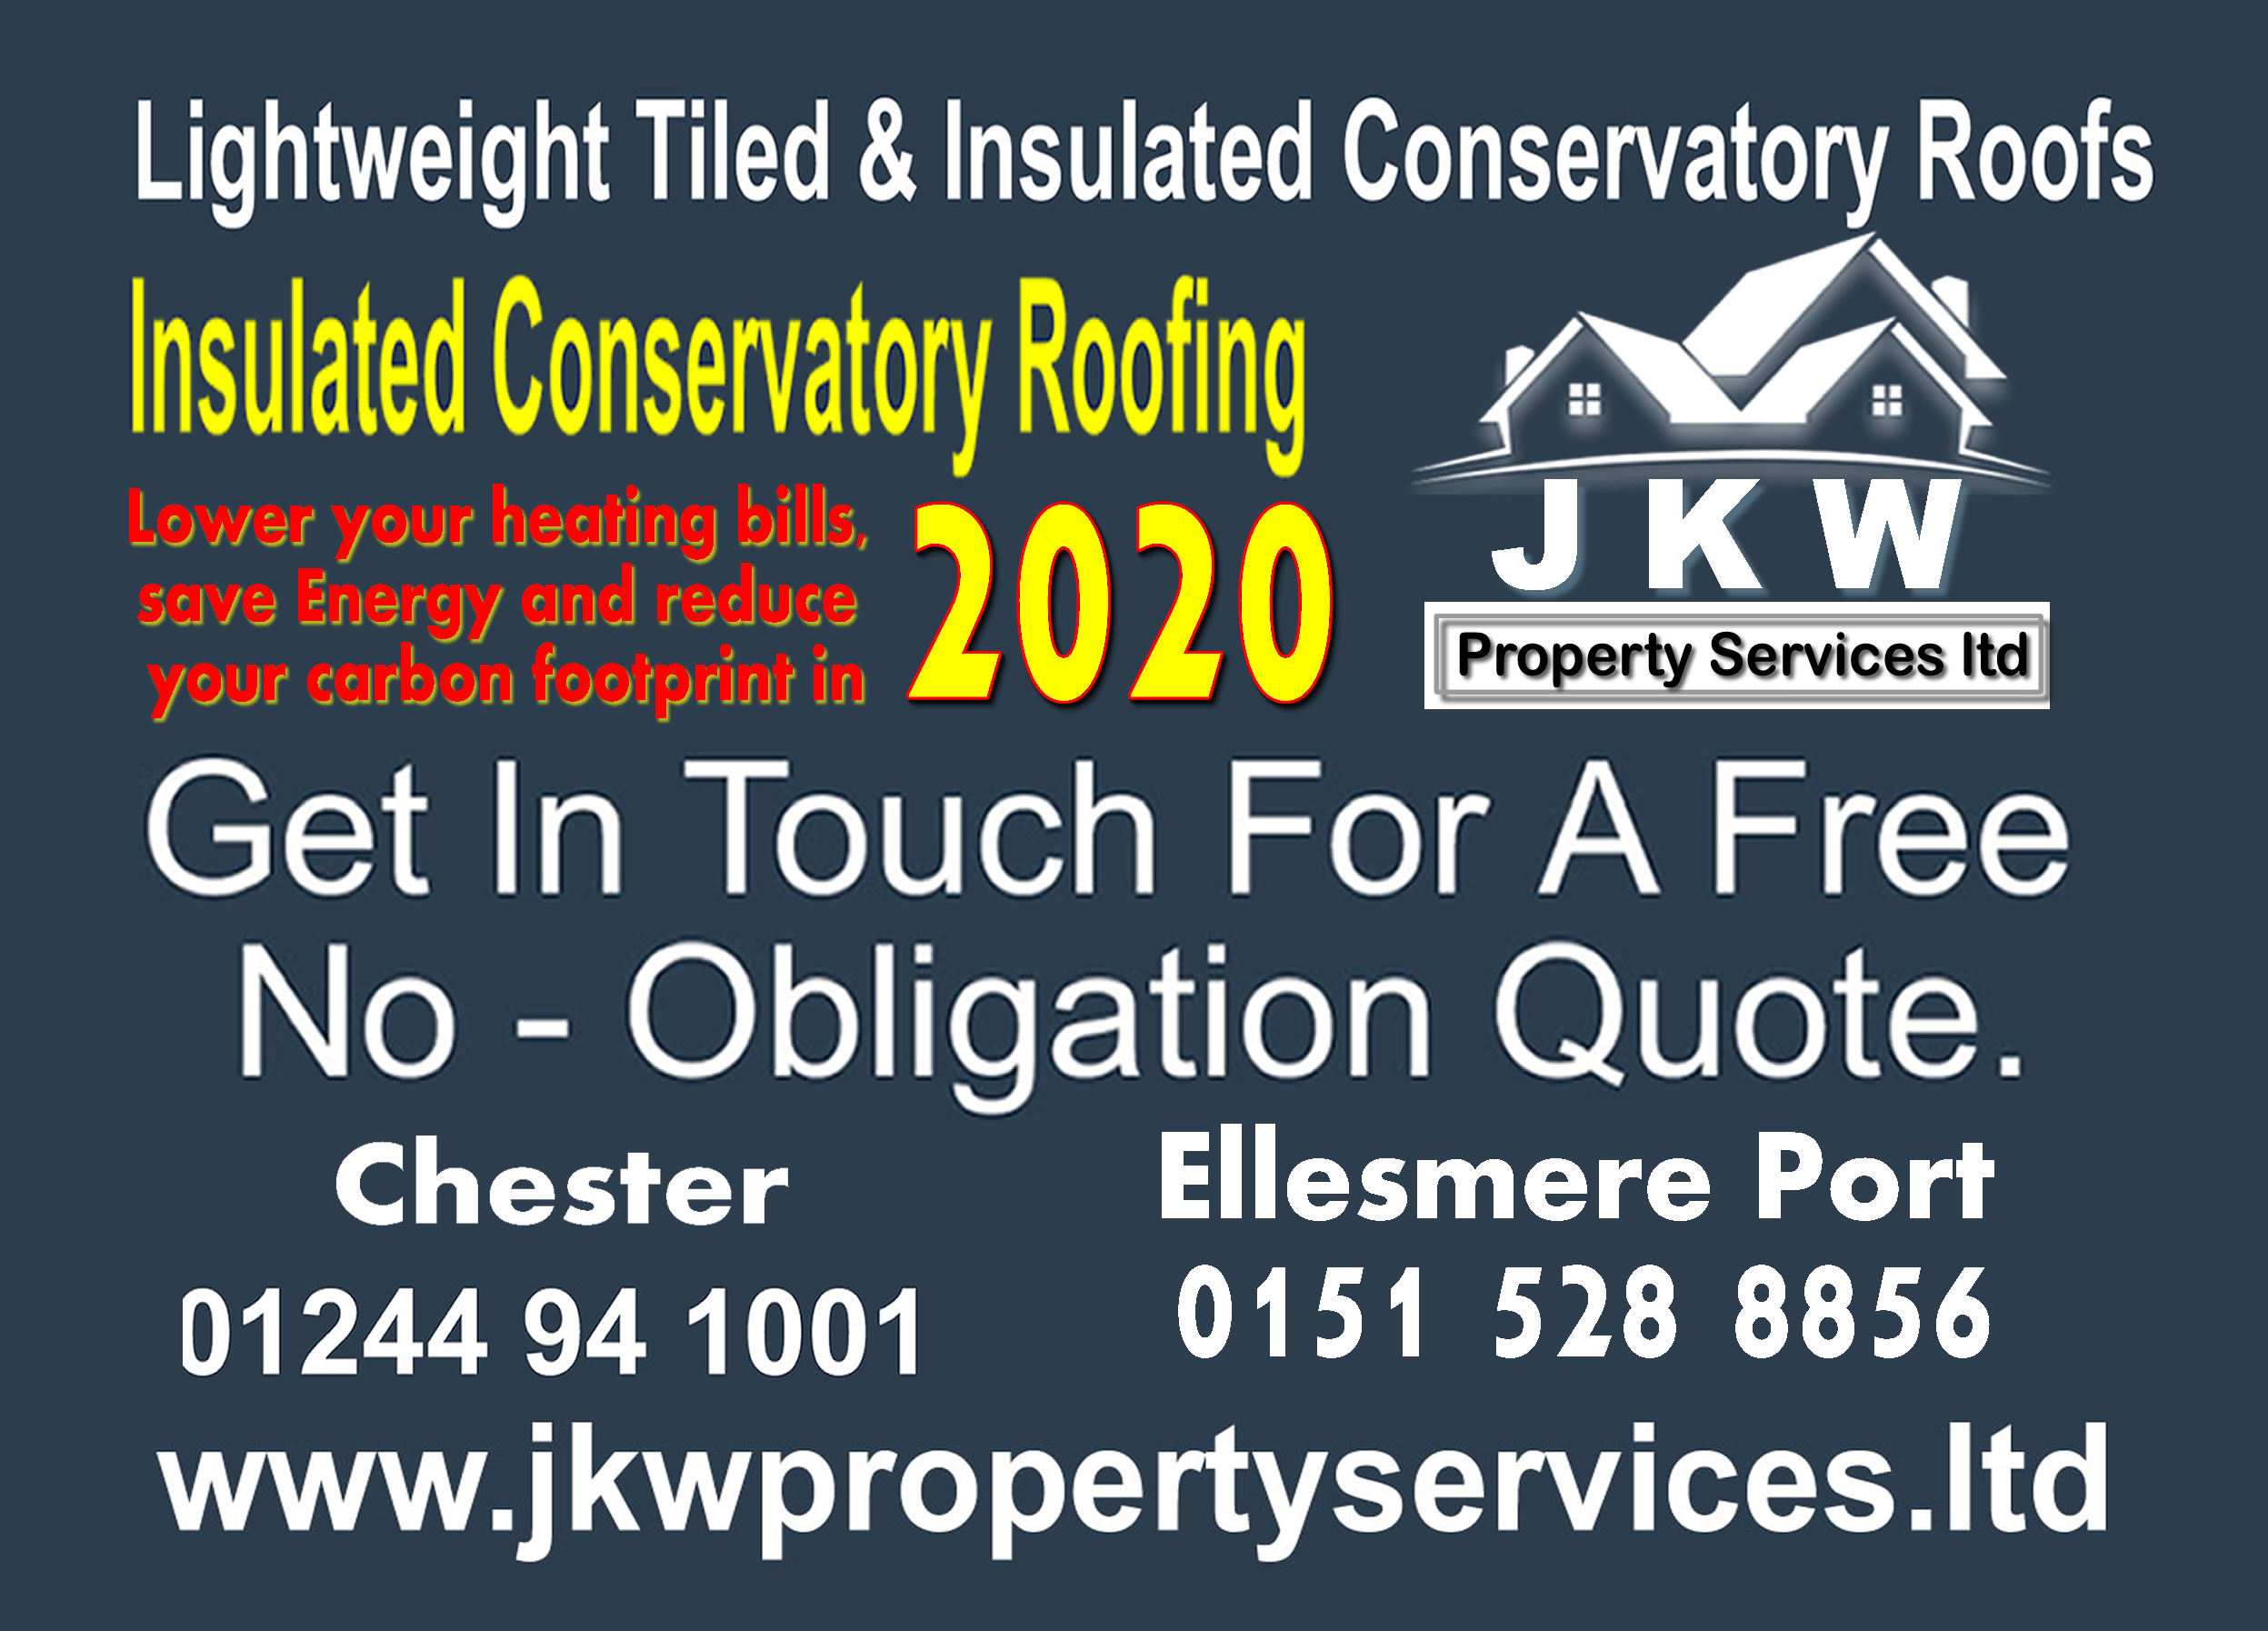 Affordable Conservatory Roof Conversions in Ellesmere Port